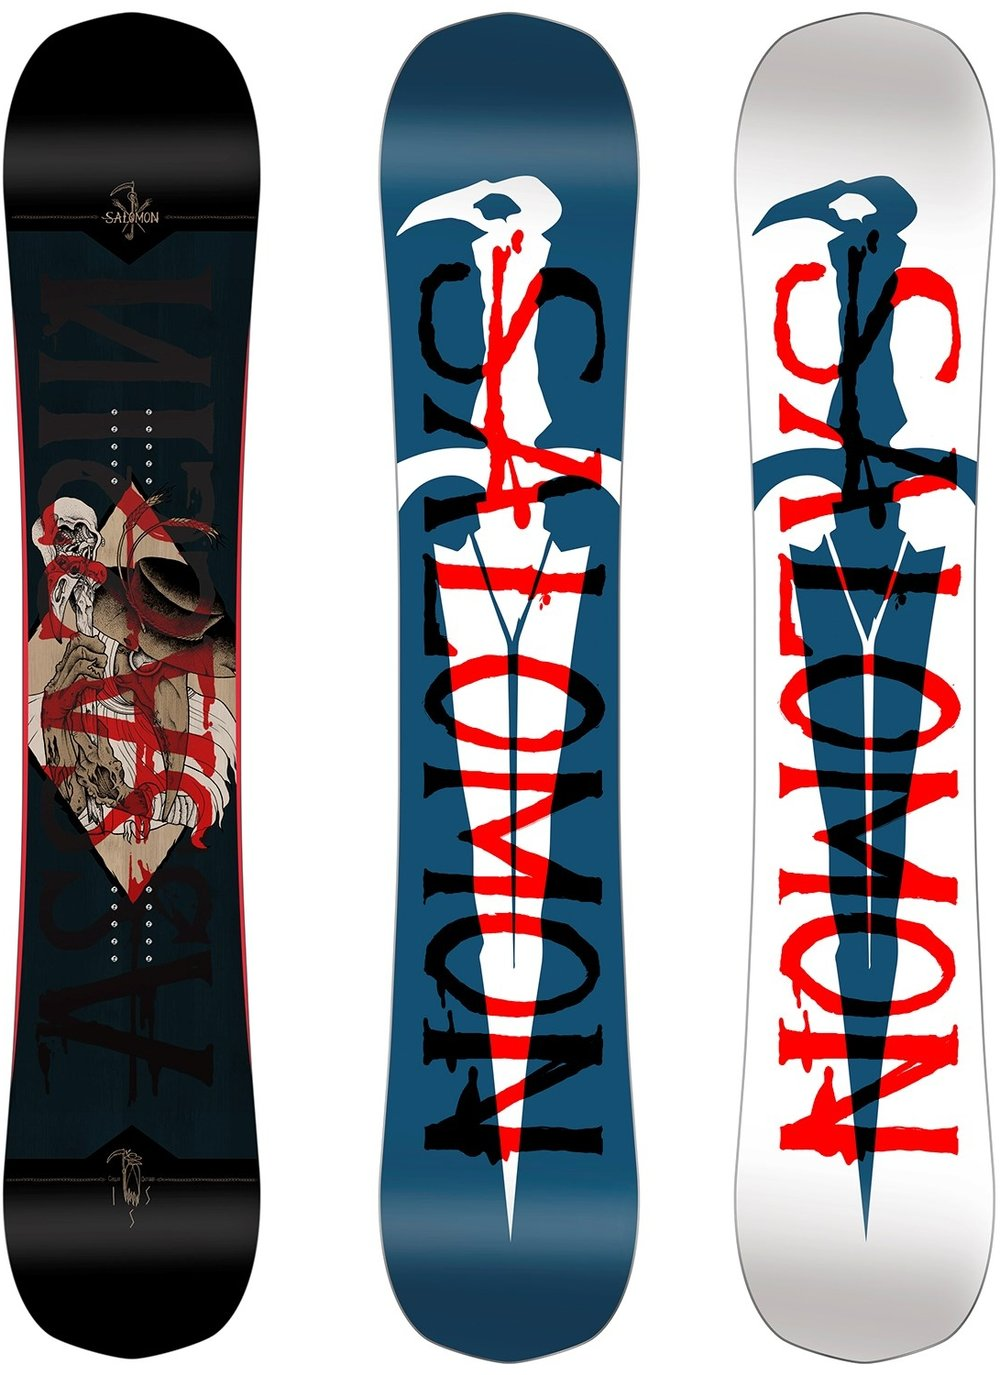 Salomon ASSASSIN Snowboard, $499.95